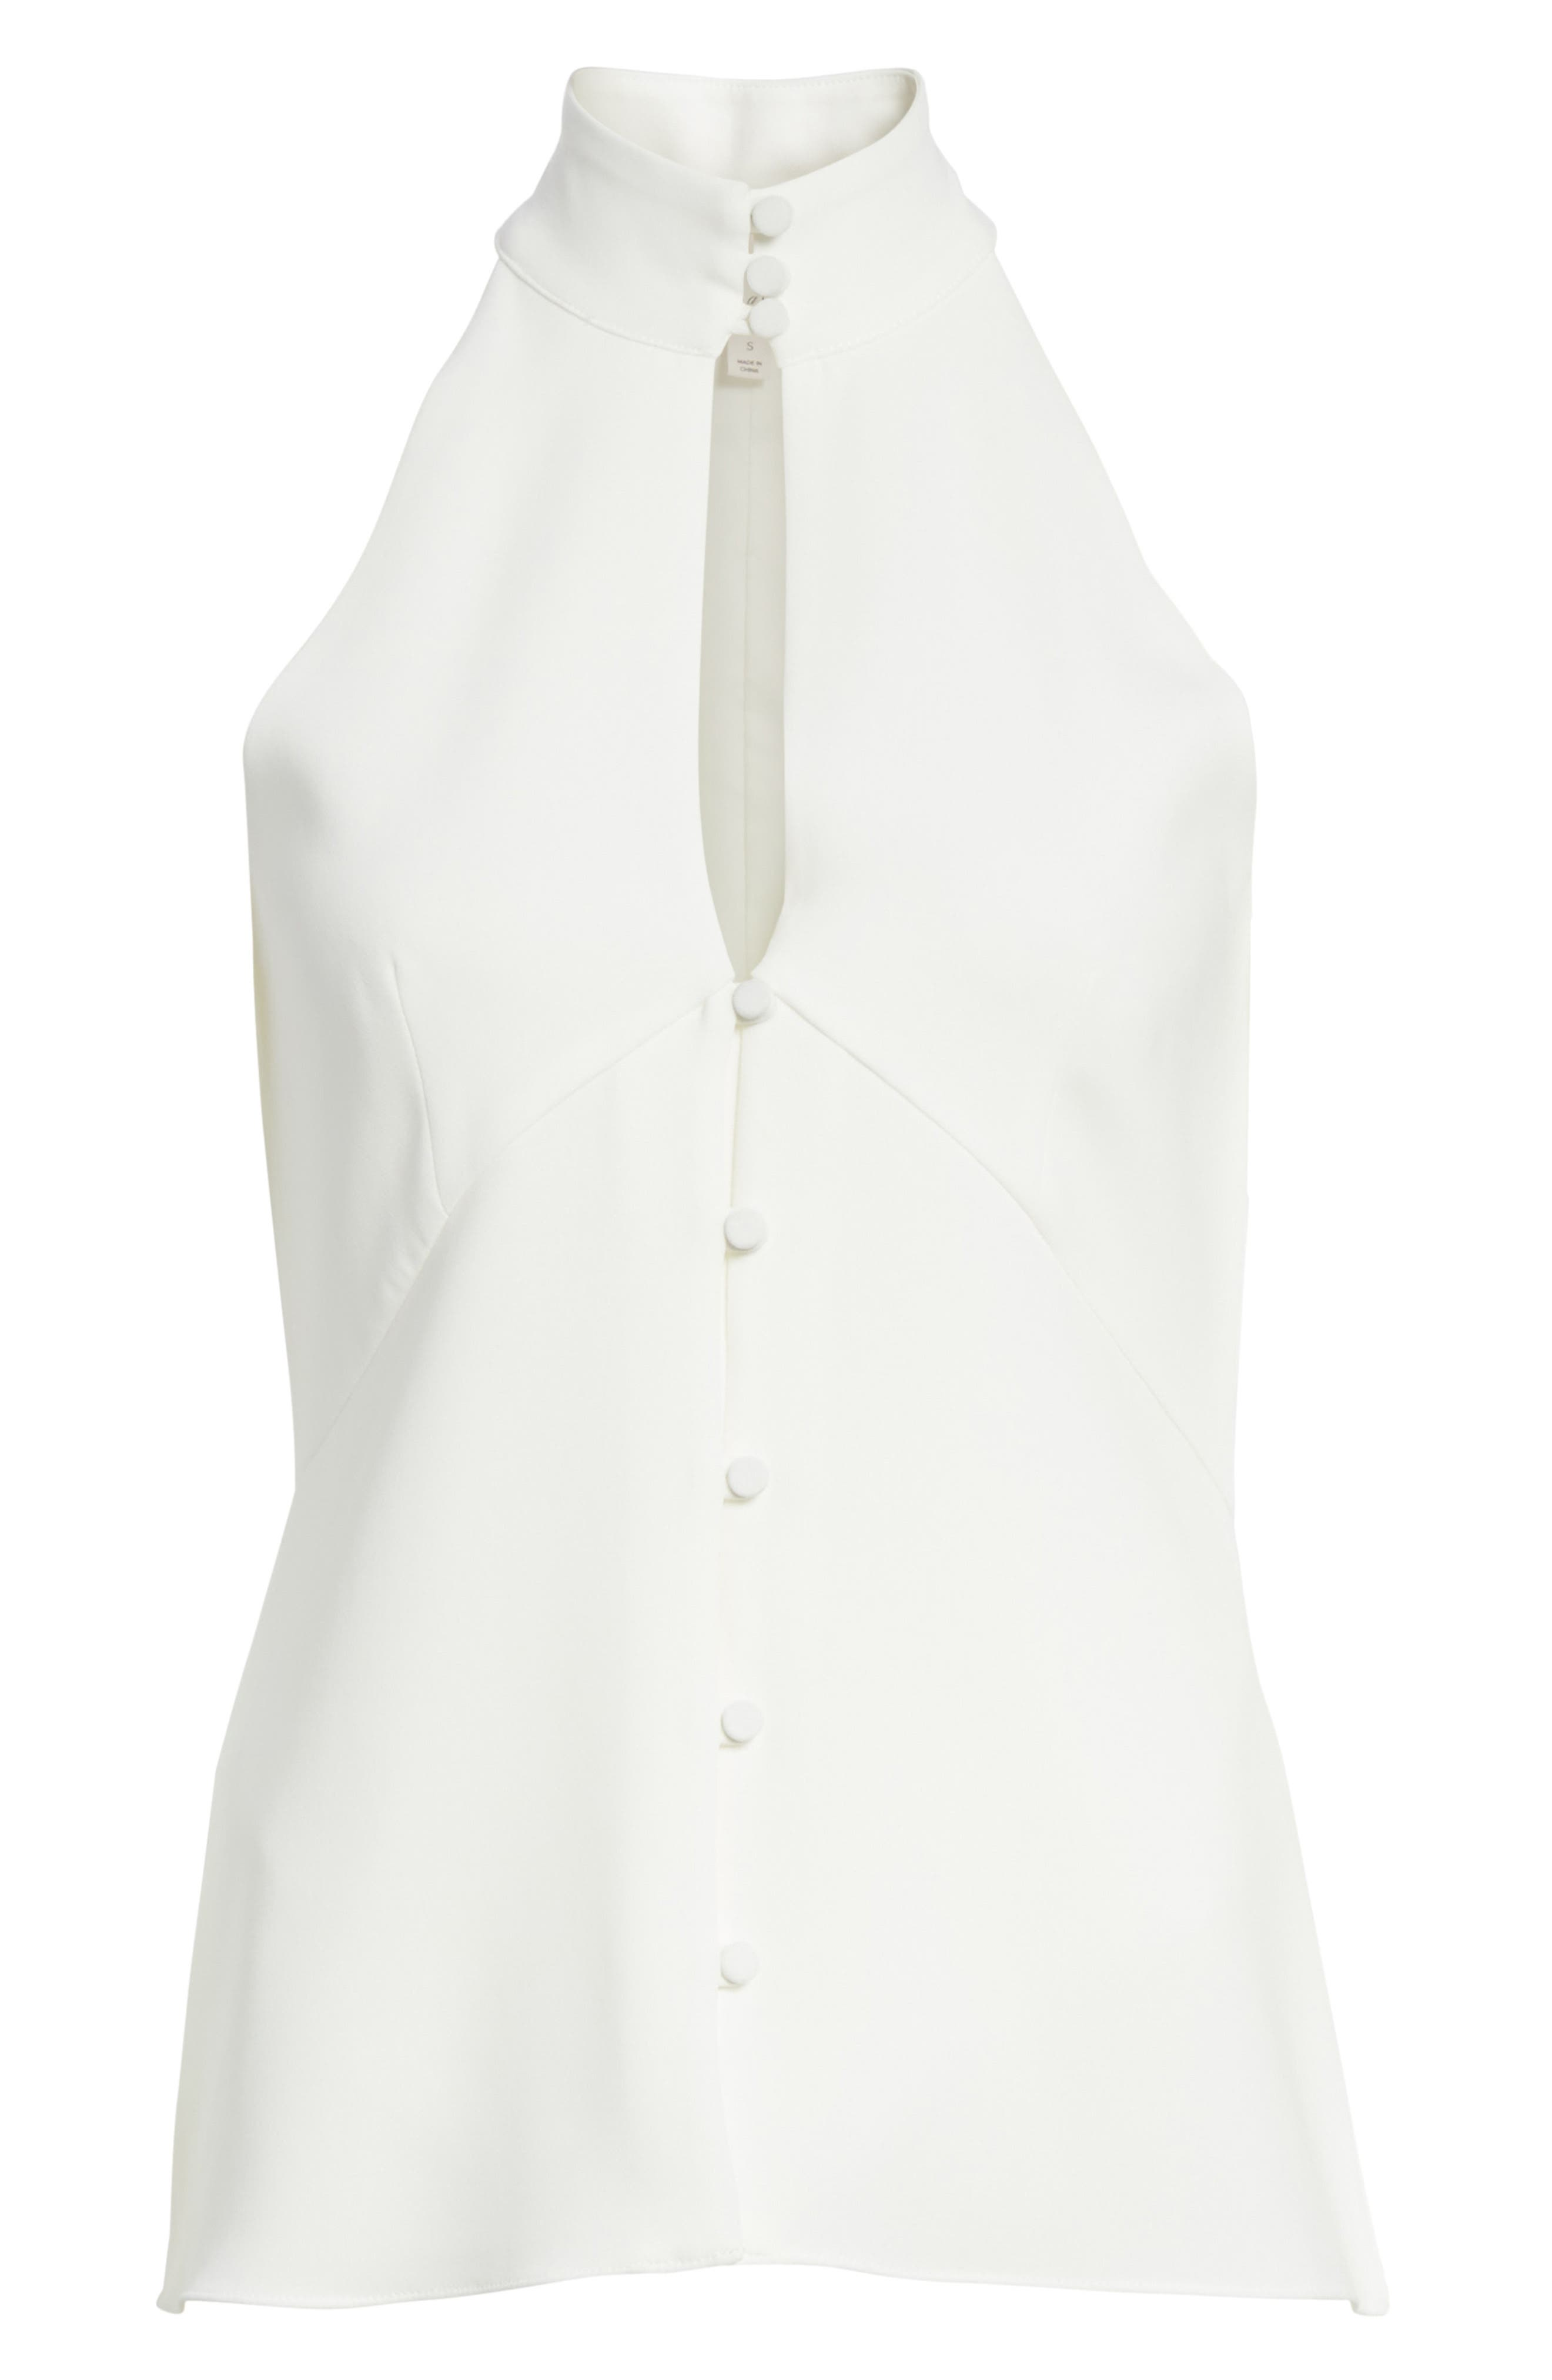 Fallon Top,                             Alternate thumbnail 6, color,                             Ivory